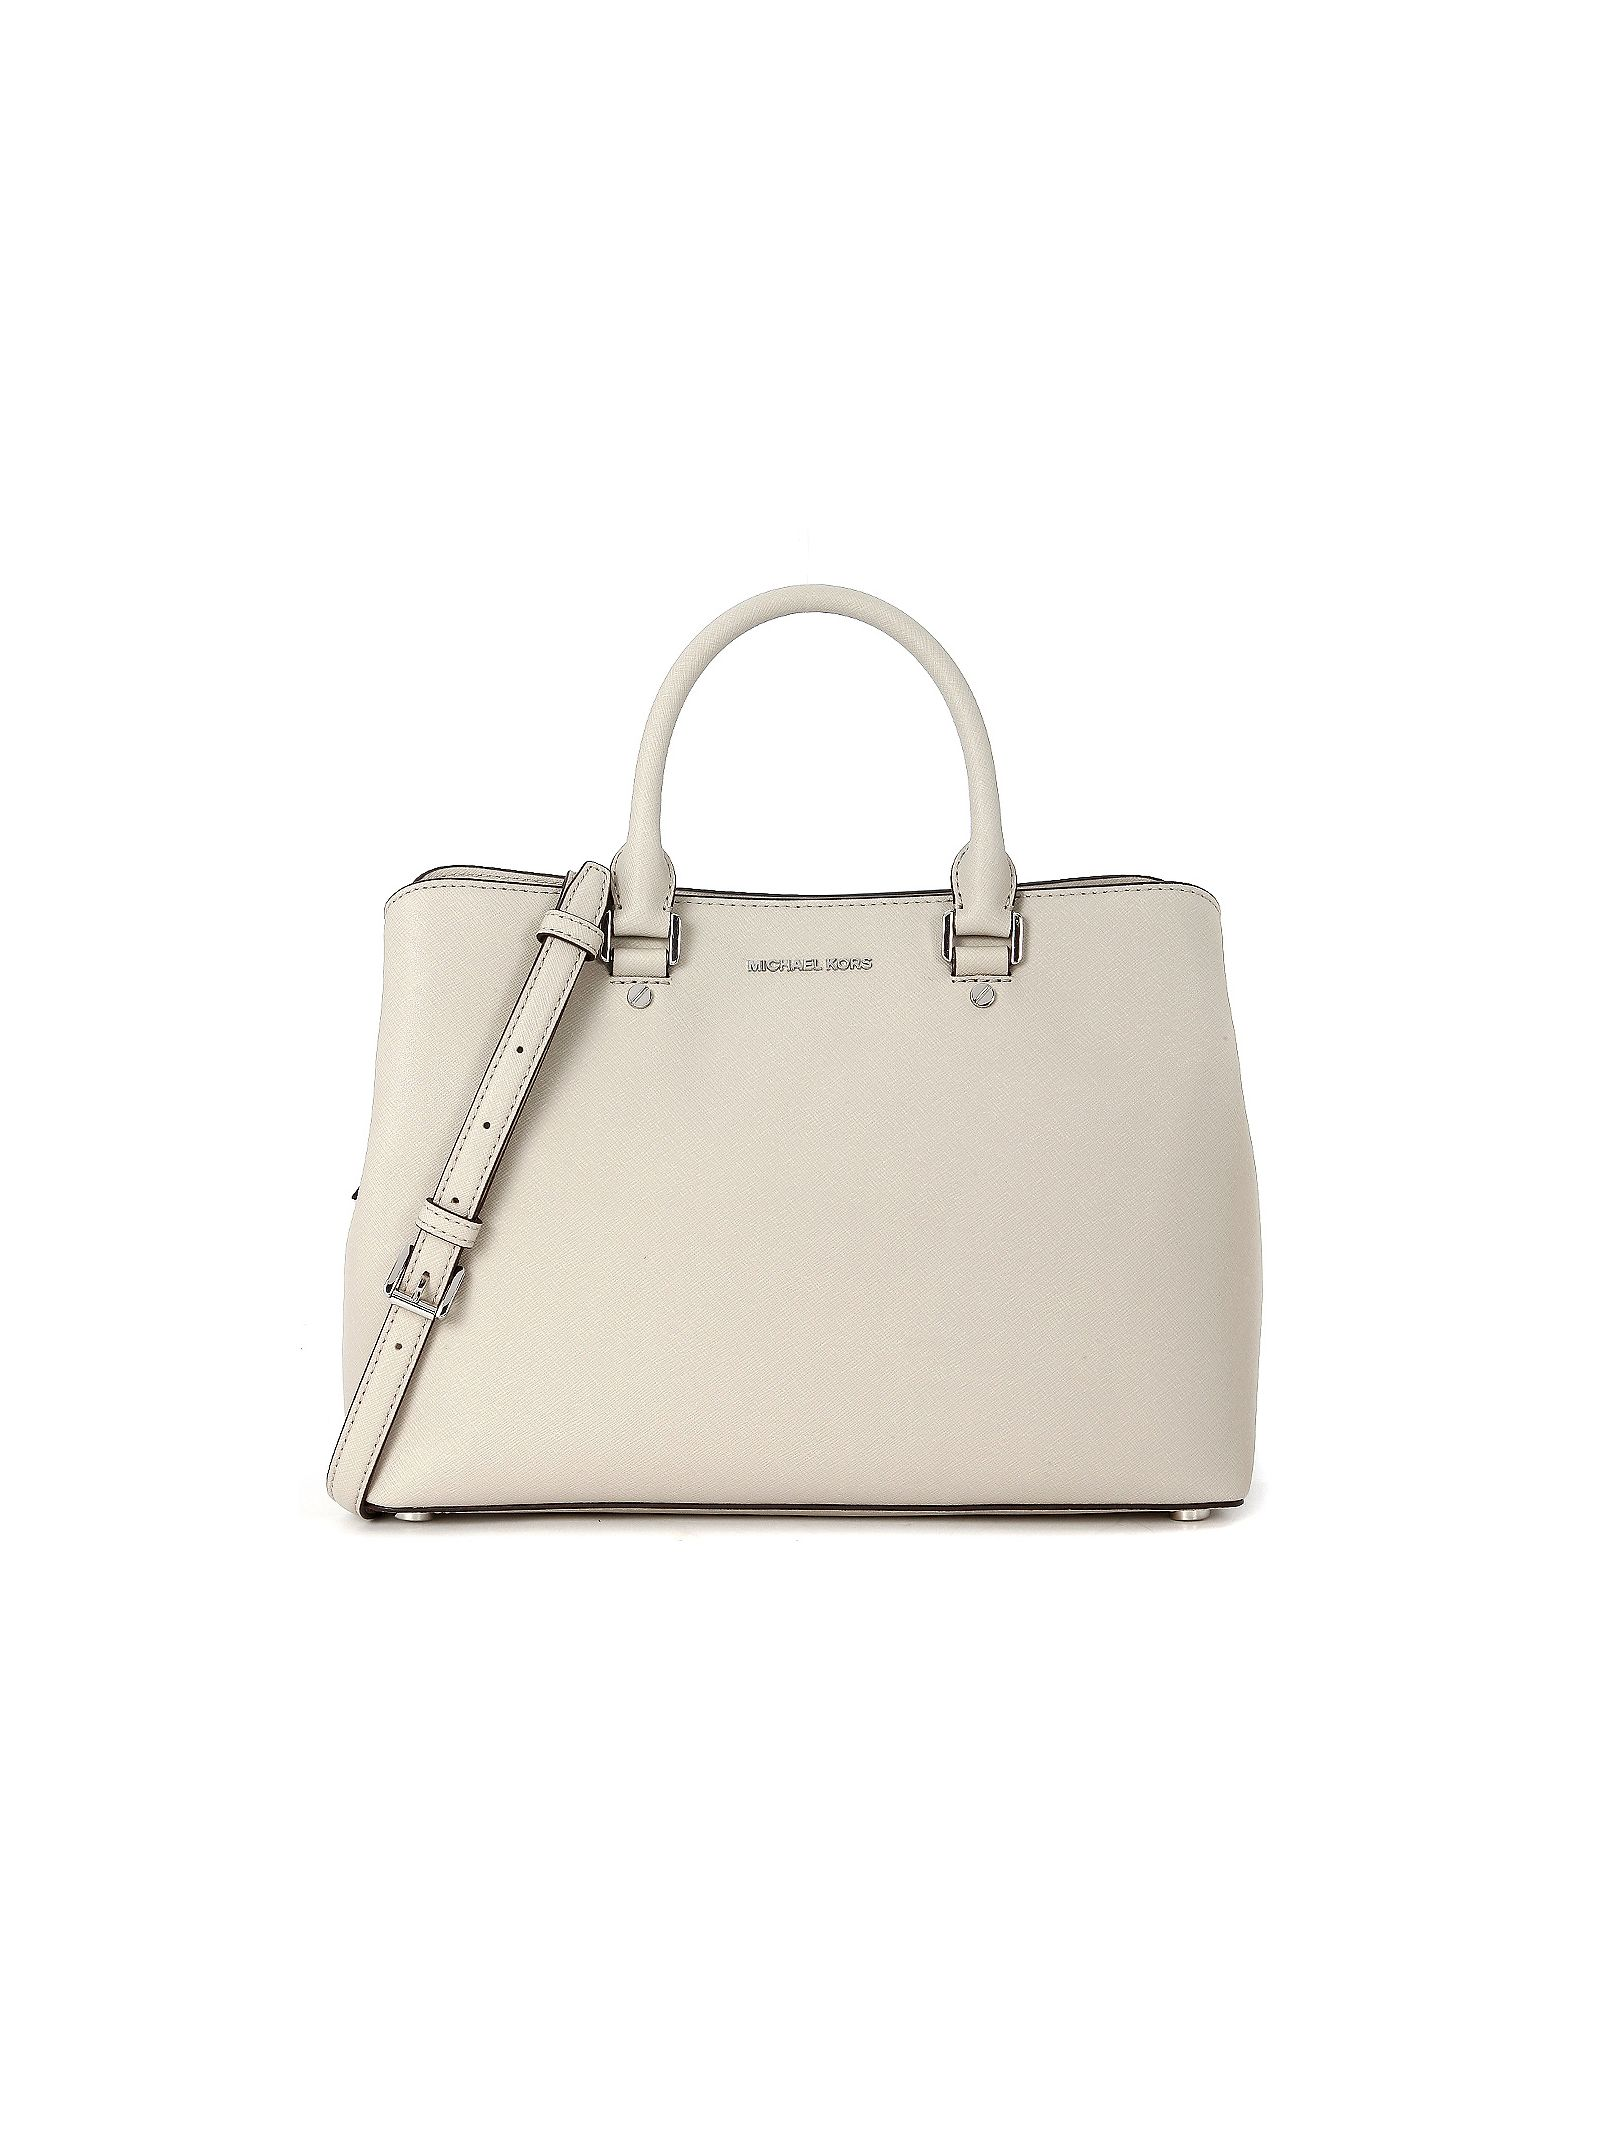 michael kors female  michael kors savannah bag in concrete saffiano leather